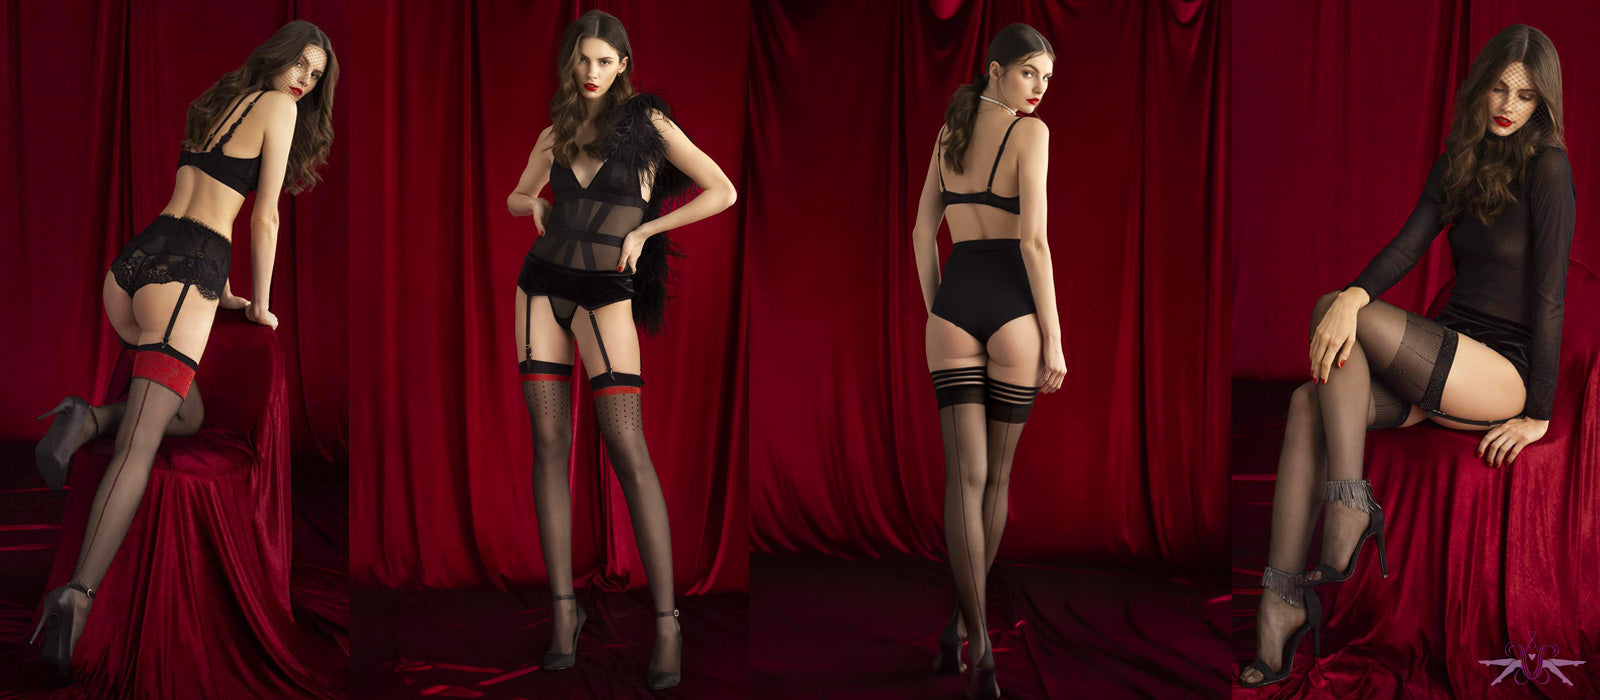 The Sensual stockings hold ups and tights from Mayfair Stockings